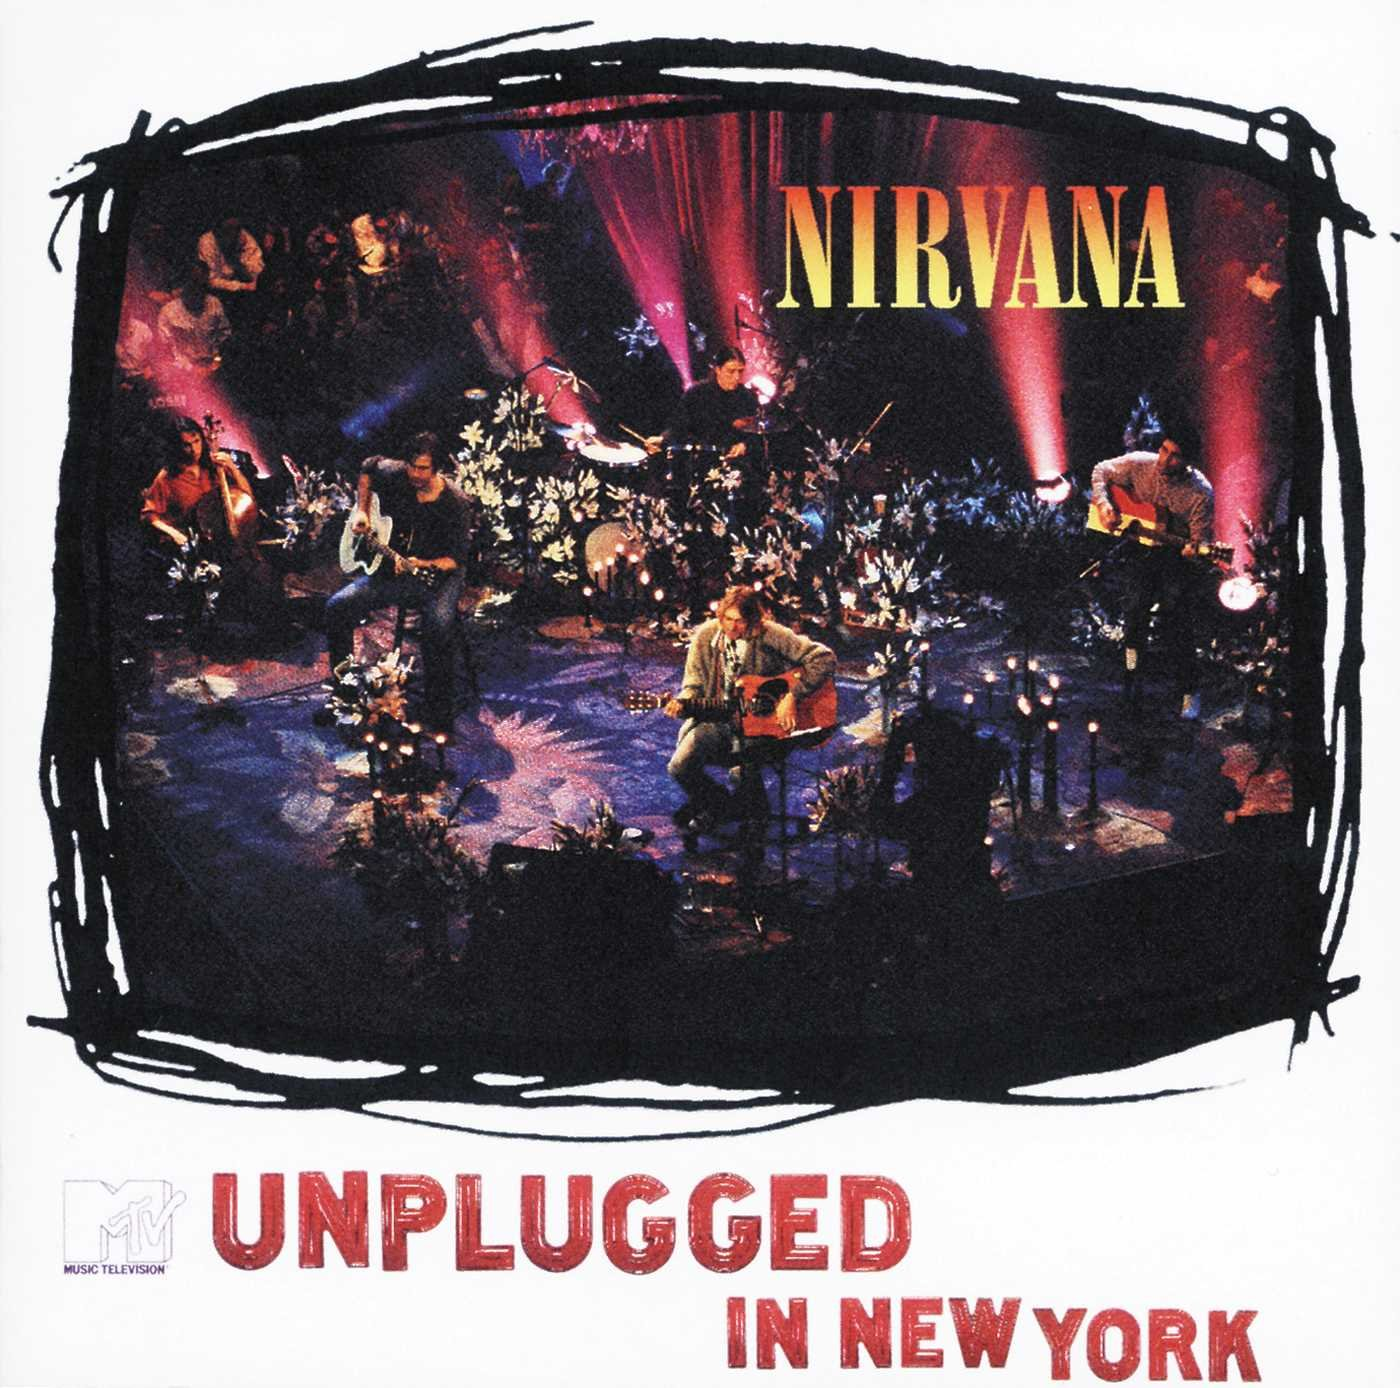 MTV Unplugged in New York [Vinyl] by AudioPhileUSA